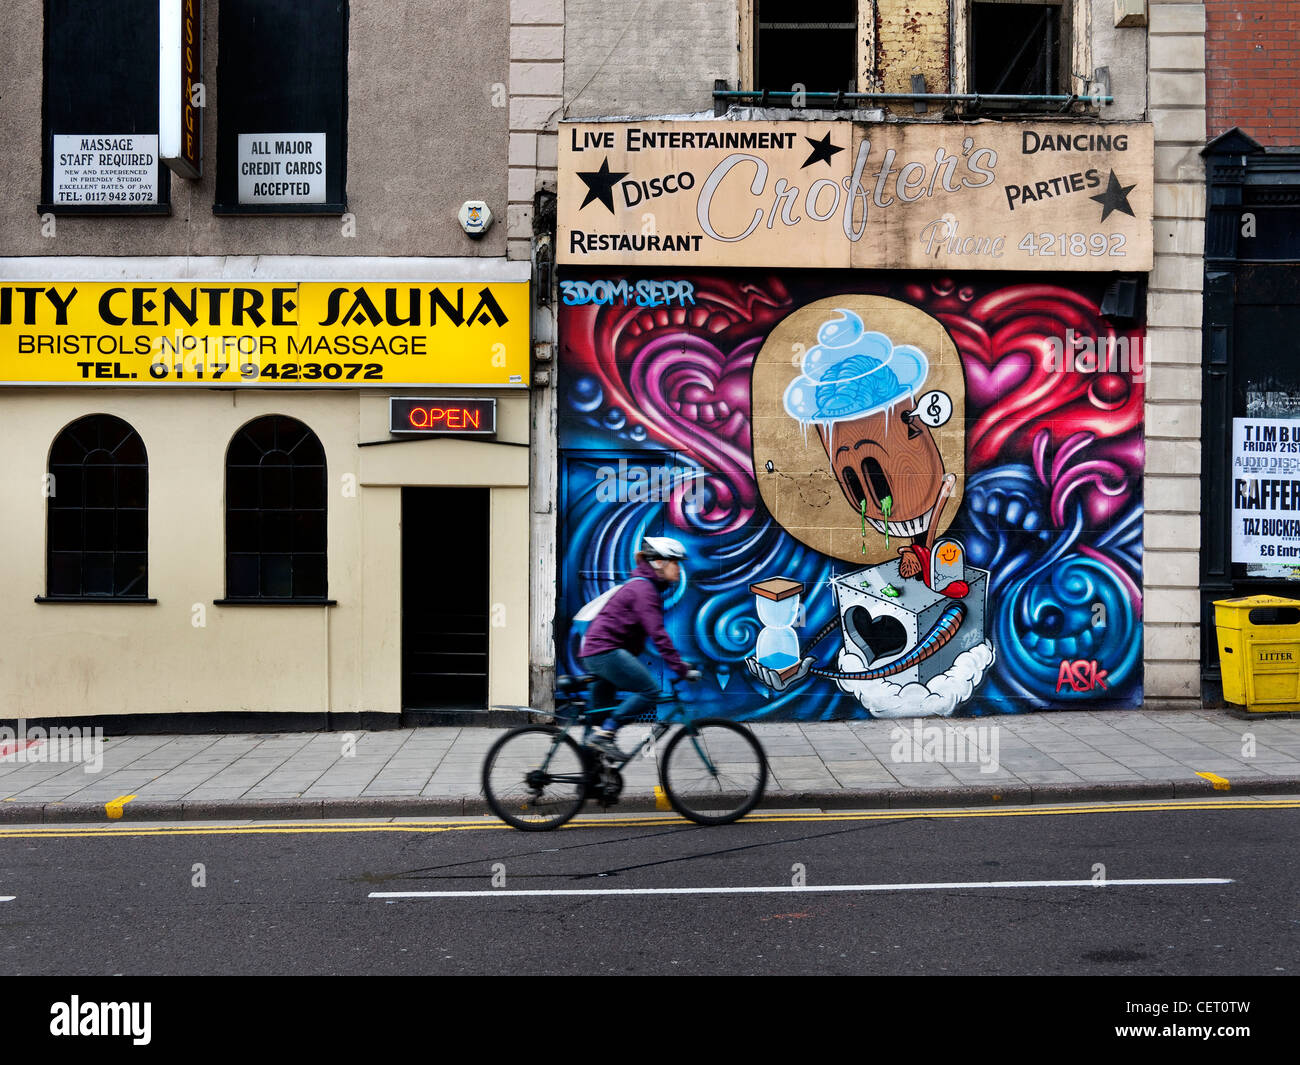 Cyclist Riding Past Graffiti On Bristol Boarded Up Shop Stock Image